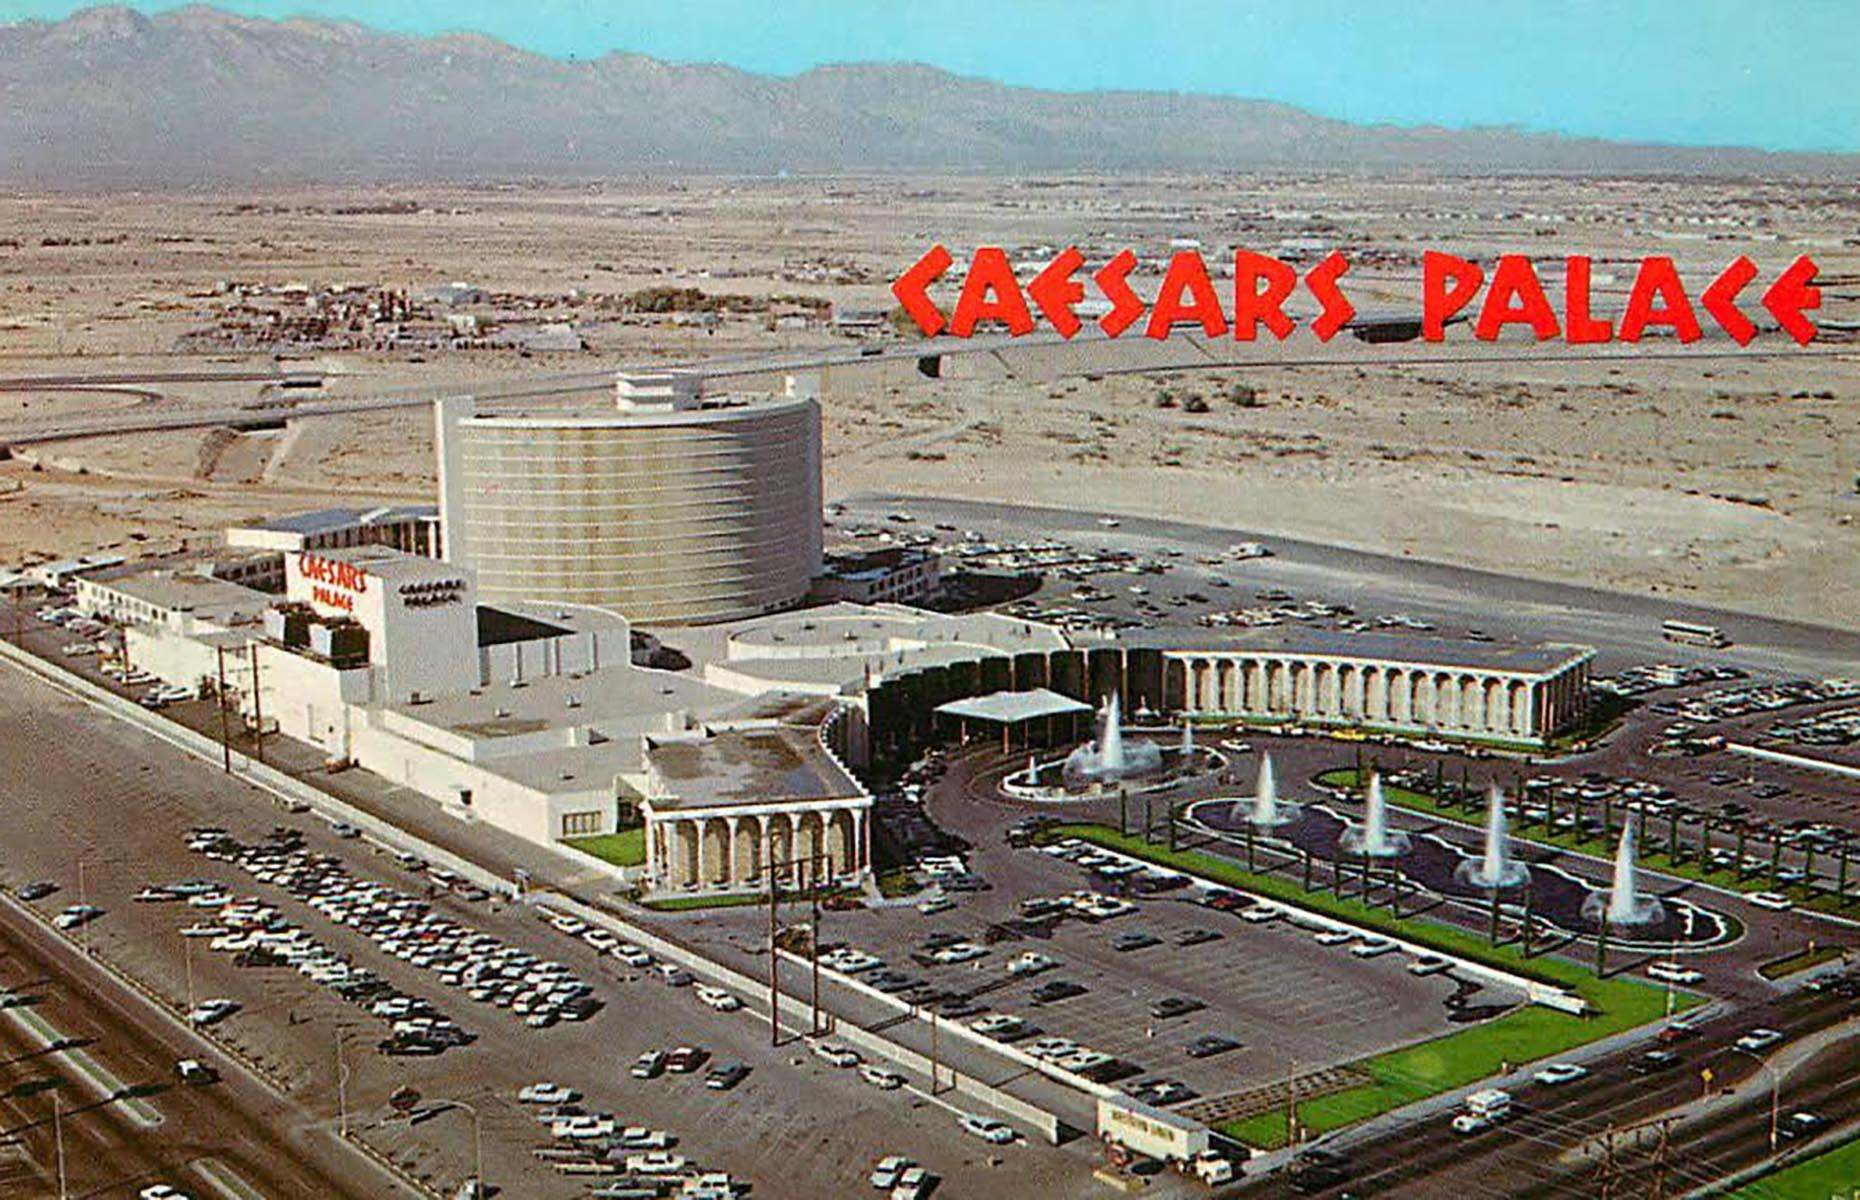 Slide 23 of 34: By the late 1960s, it was clear that to compete with existing hotels and casinos, new ventures would have to be special. Cue Caesars Palace and the Circus Circus. Opened in 1966 and 1968 respectively, both hotels were banking on their themed decor to bring in the dollars. Caesars Palace (pictured here in 1970) took inspiration from the Roman Empire, complete with marble columns and statues while the Circus Circus' main structure was designed as a giant circus tent – these hotels were first to set the trend for themed hotels in Vegas.